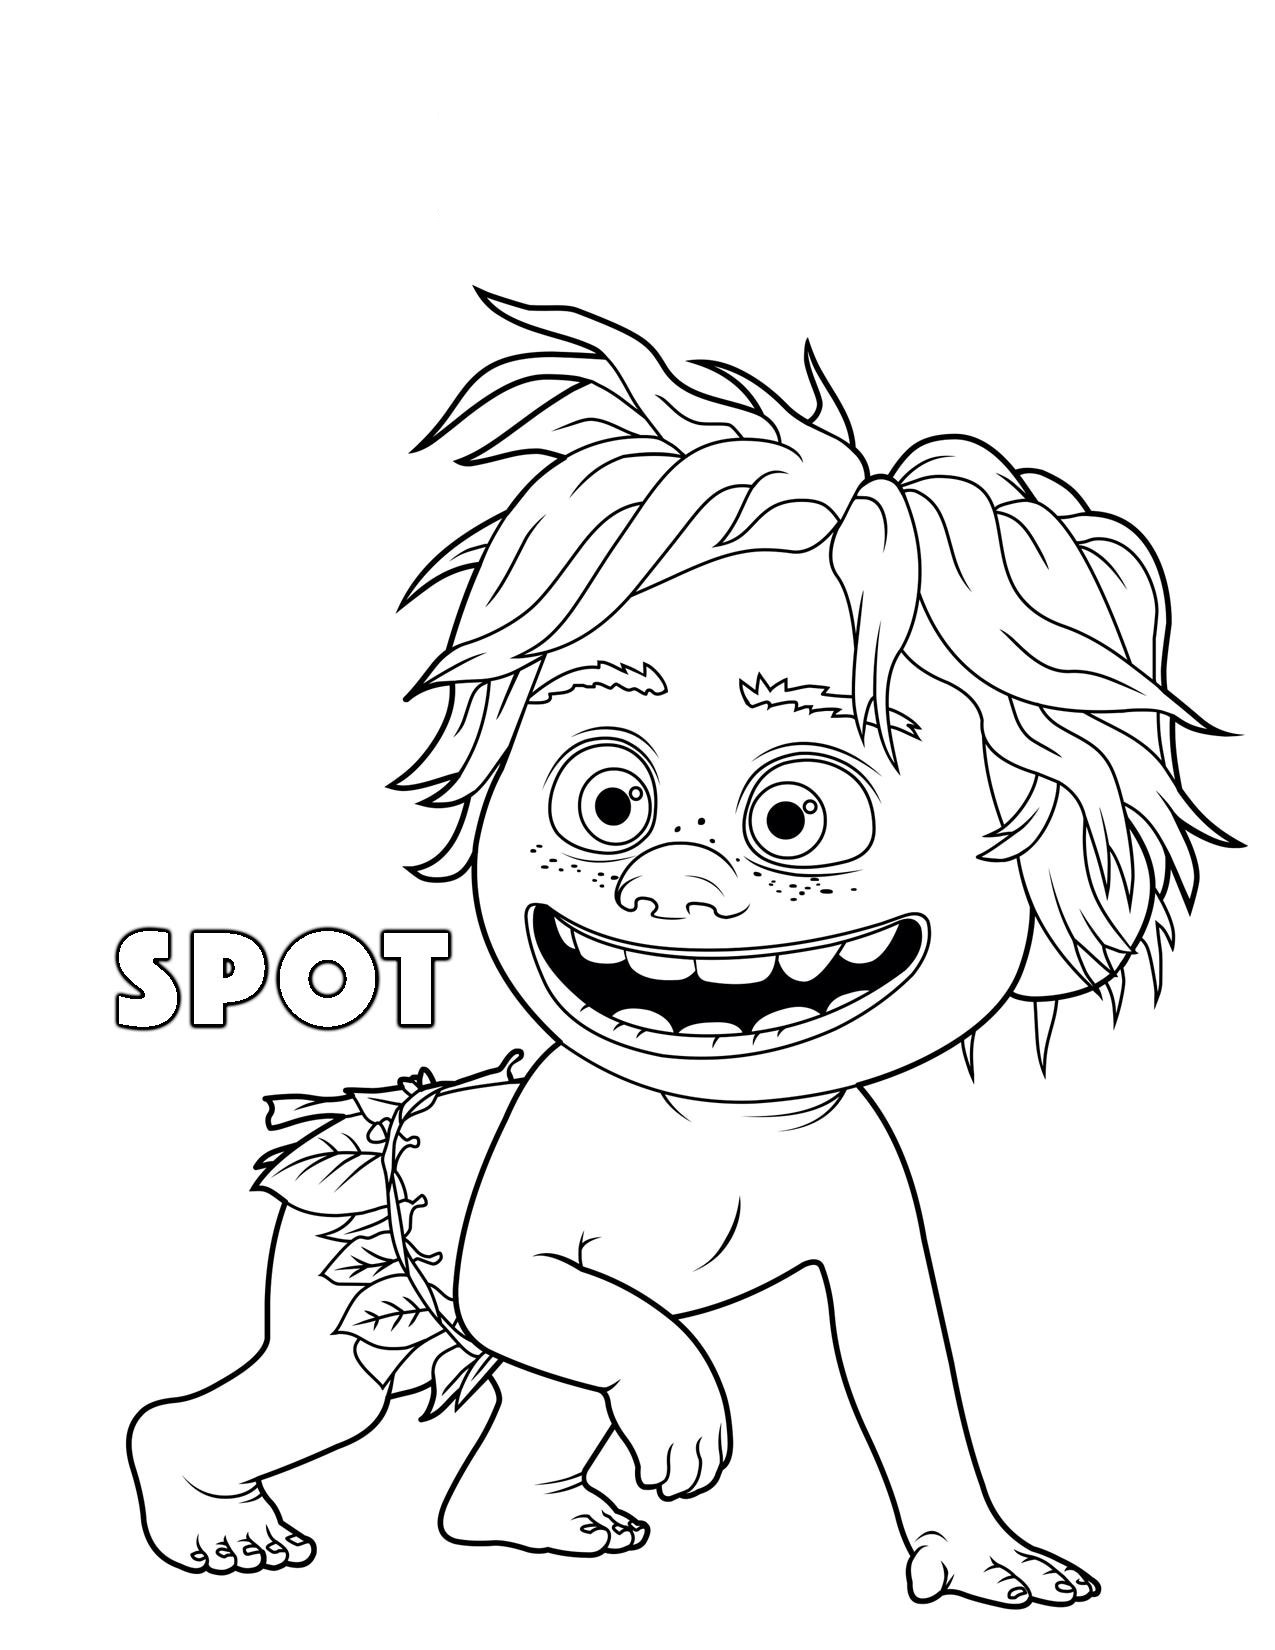 the good dinosaur spot coloring pages kids coloring pages